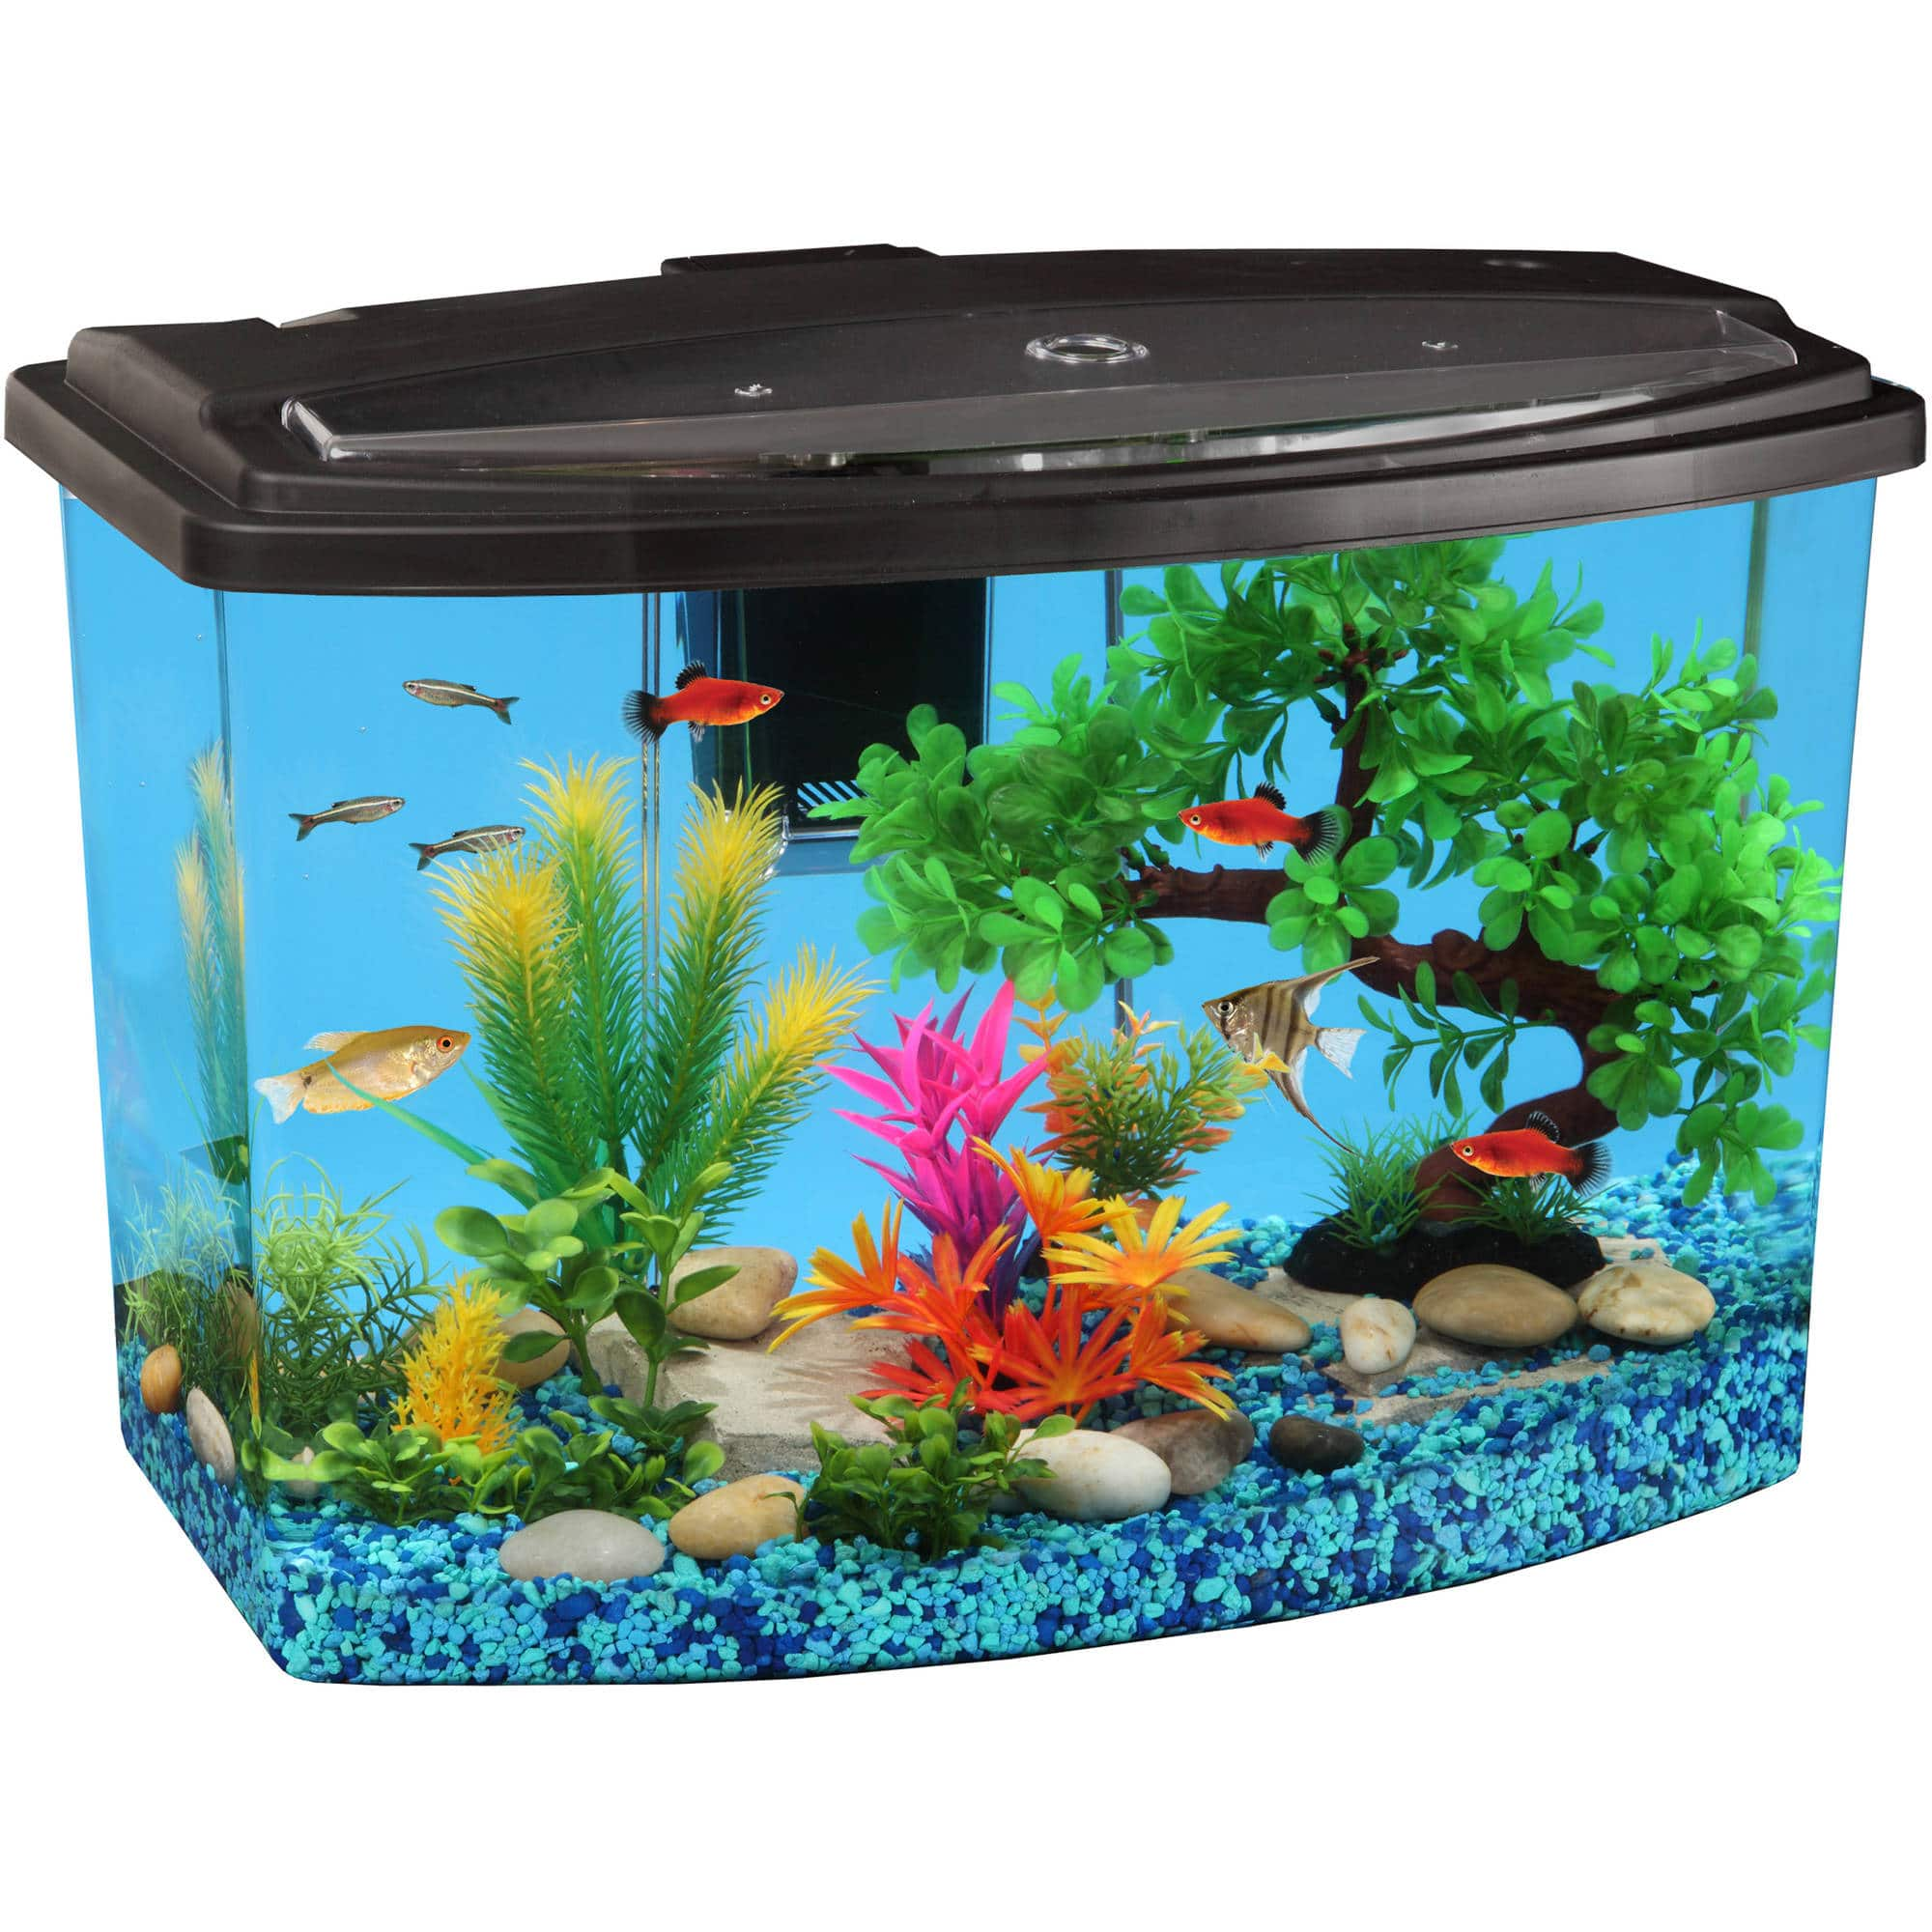 Hawkeye 7 Gallon Bow View Aquarium Kit - $41.50 + tax - F/S or Store Pick up